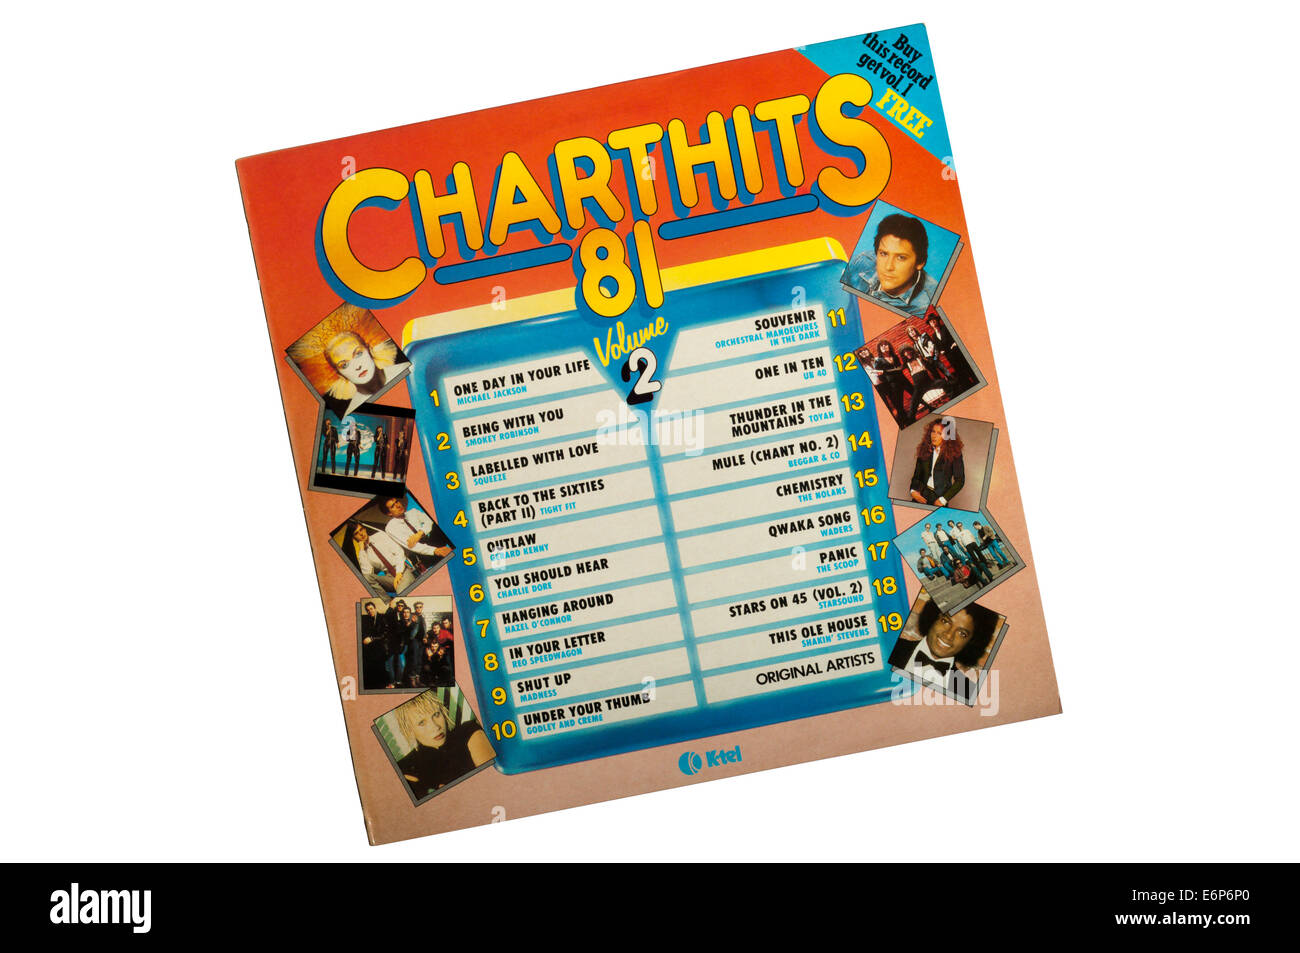 Chart Hits 81 Volume 2 was a compilation album released by K-Tel in 1981. - Stock Image